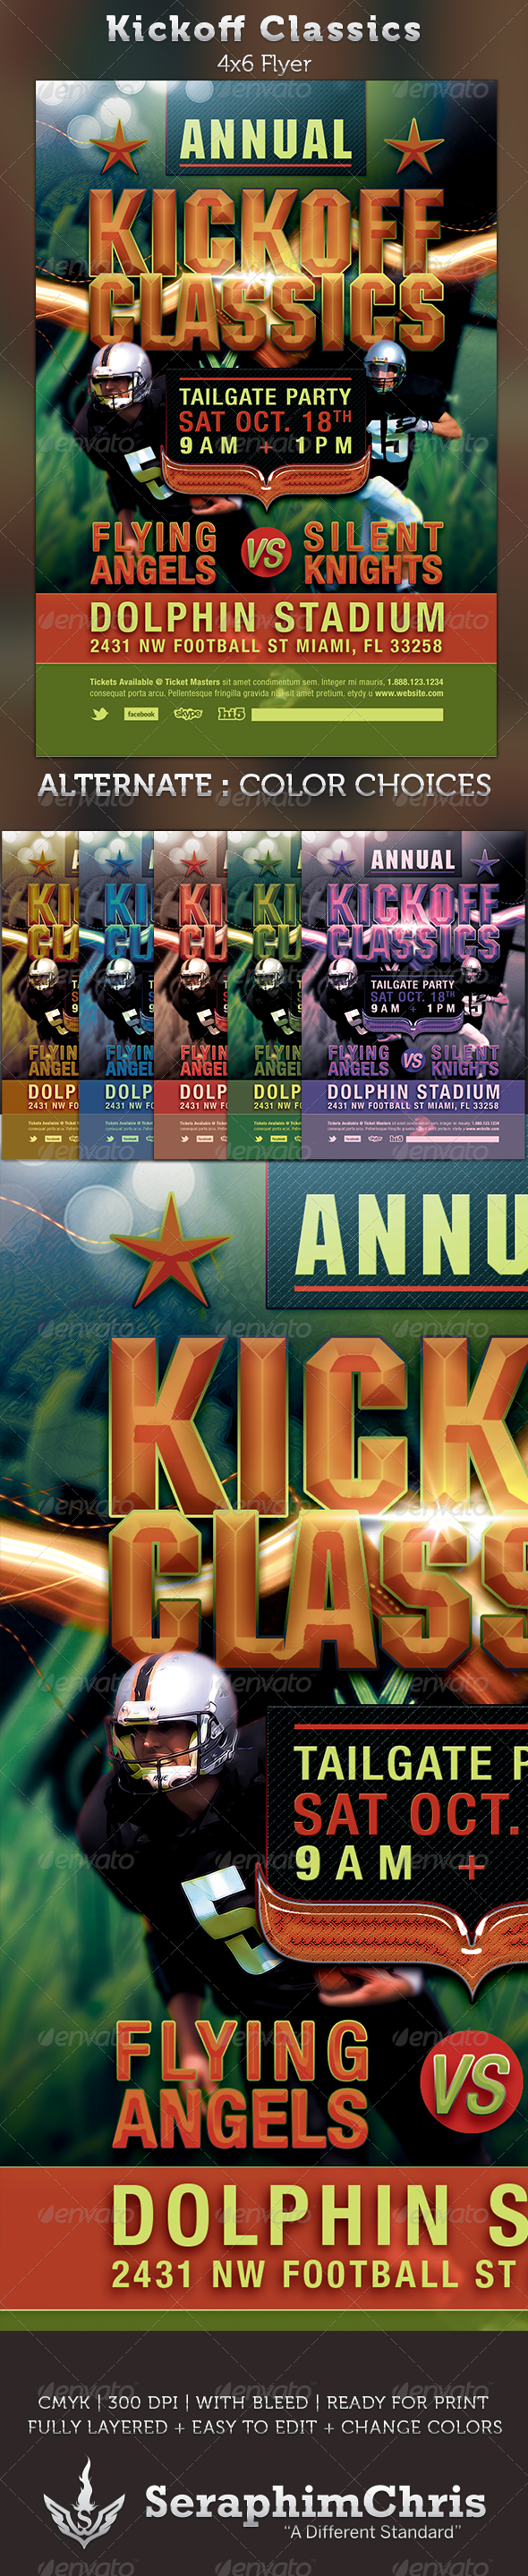 Kickoff Classics Football Flyer Template - Sports Events